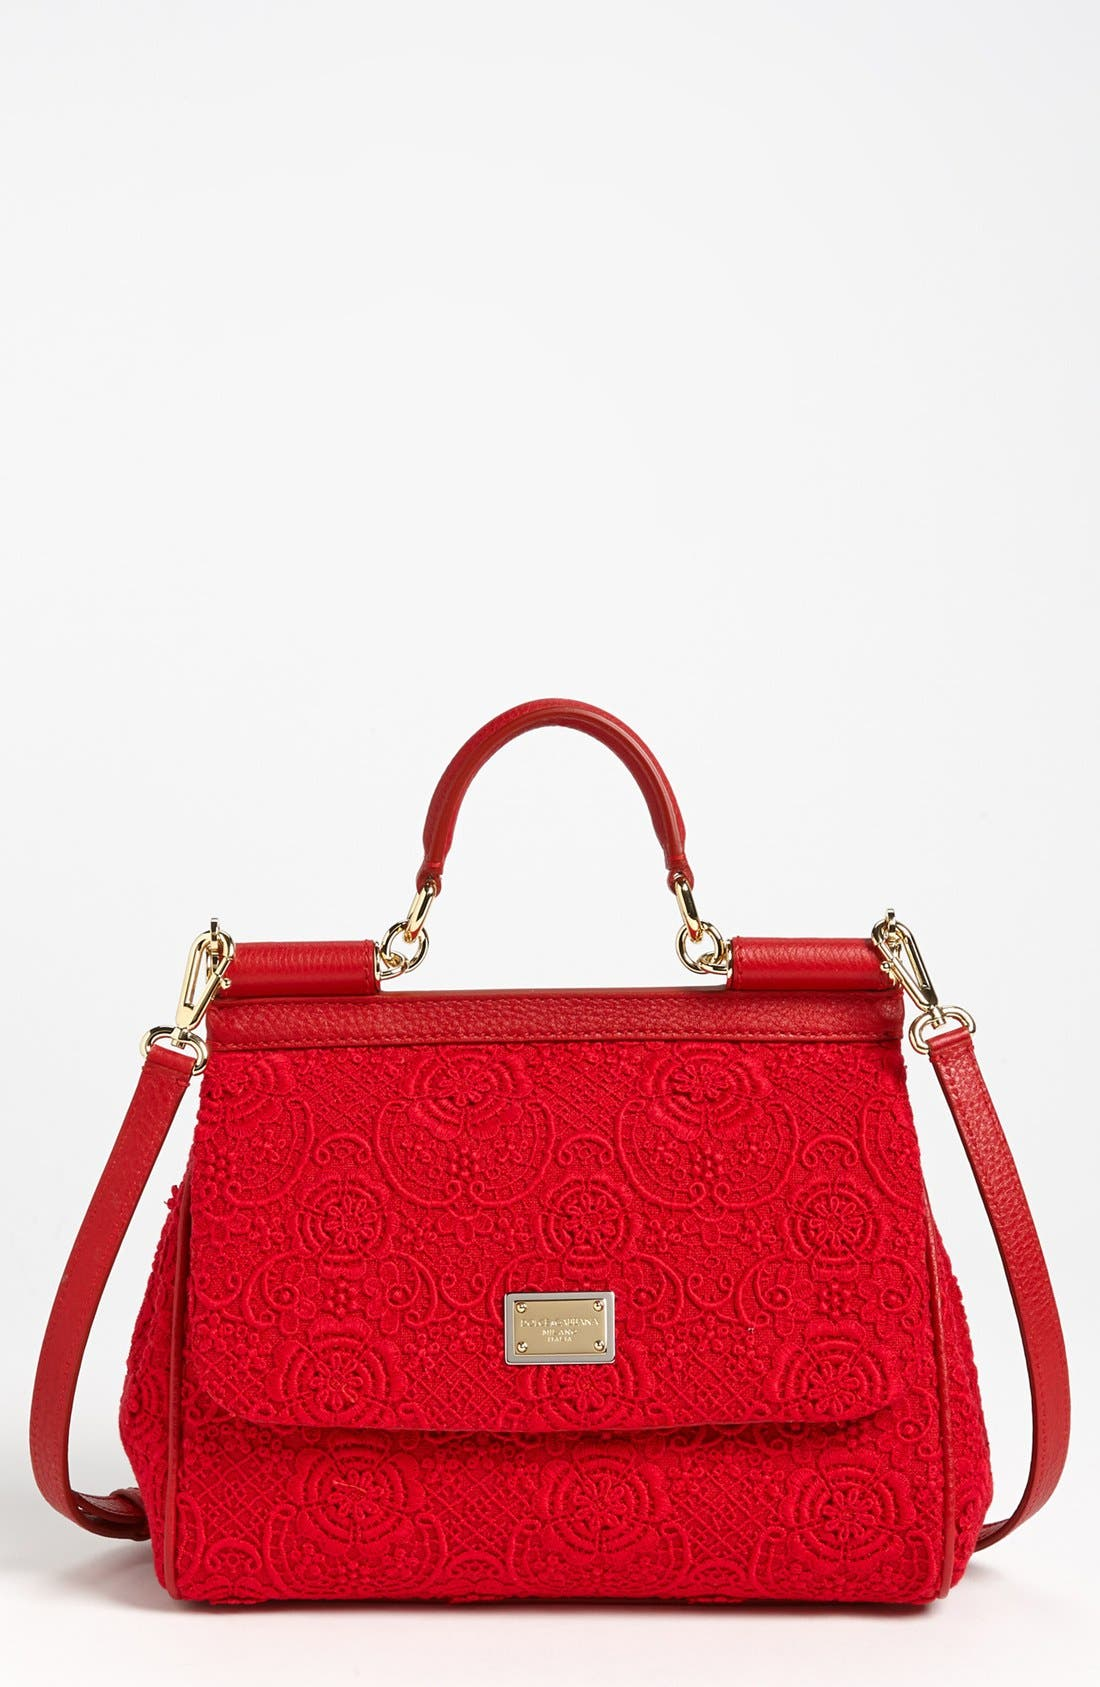 Main Image - Dolce&Gabbana 'Miss Sicily - Small' Leather & Lace Satchel